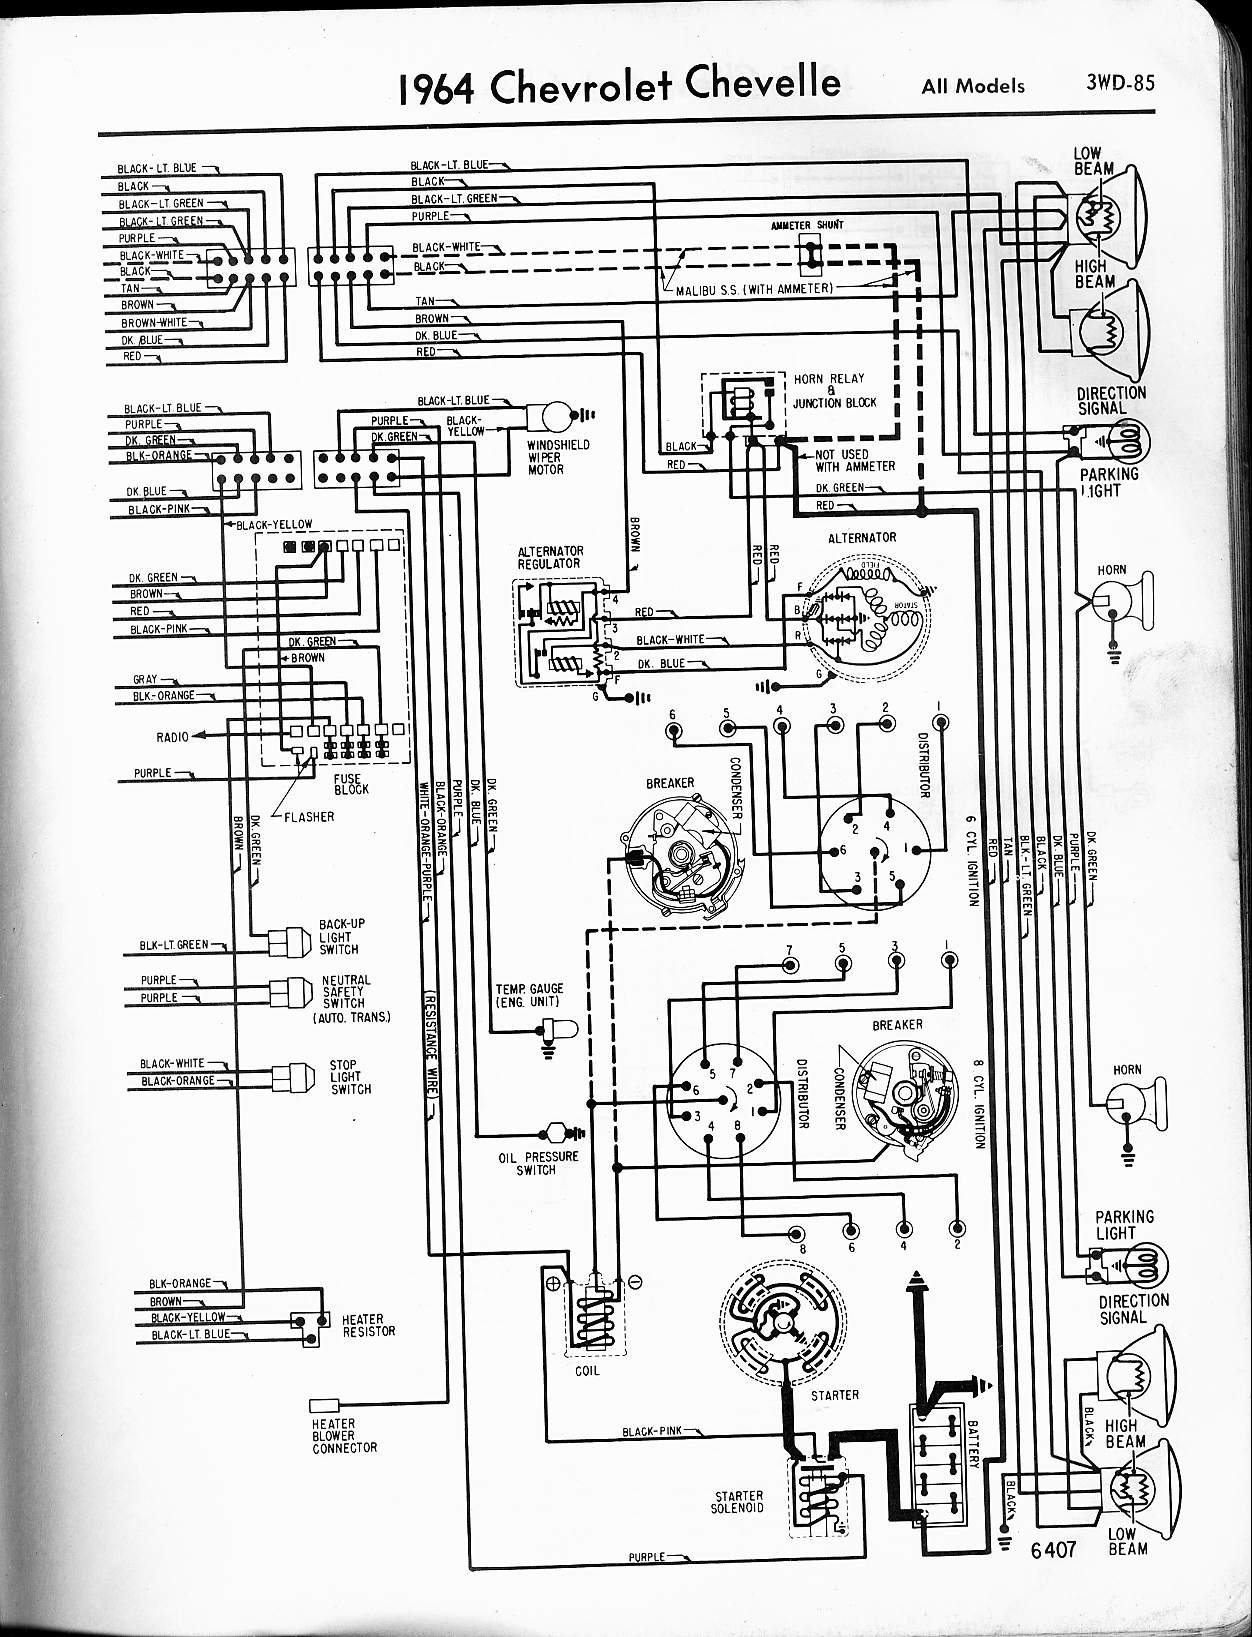 MWireChev64_3WD 085 1964 thunderbird wiring diagram 1964 thunderbird stereo wiring 1968 mustang tail light wiring diagram at bakdesigns.co